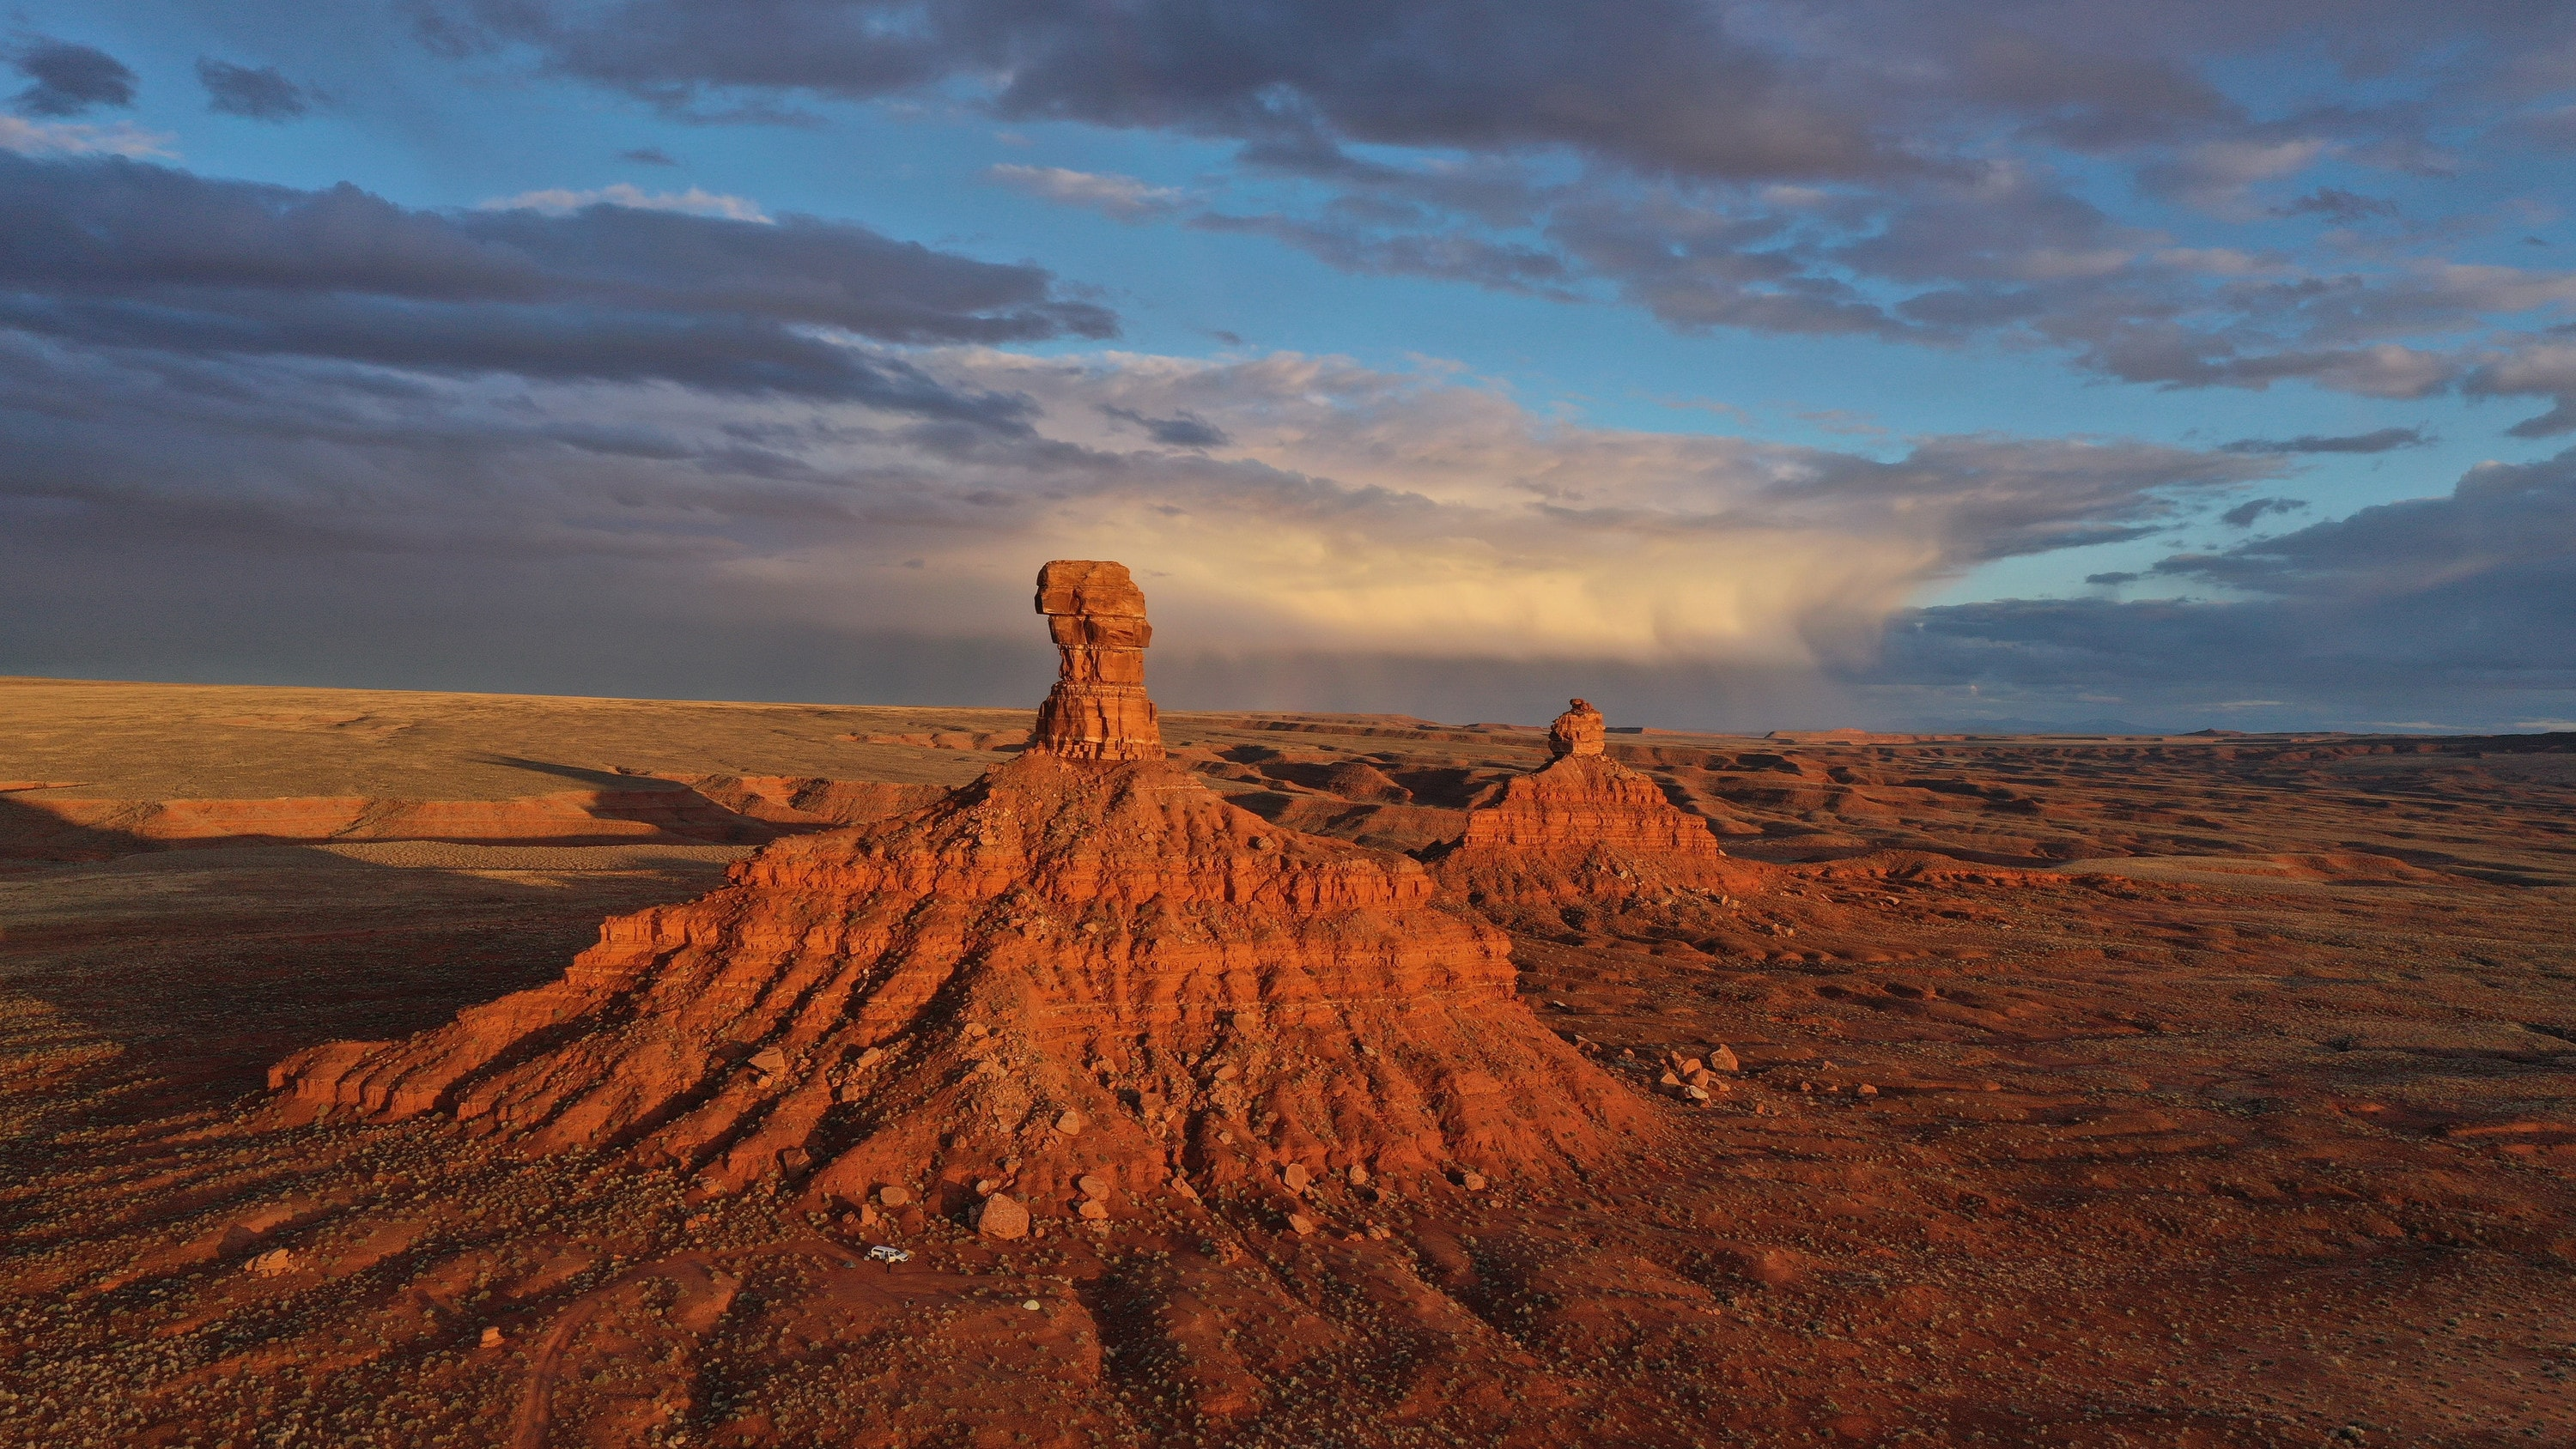 A pair of bluffs painted orange by the setting sun in Valley of the Gods, Utah. (National Geographic for Disney+/Renan Ozturk)